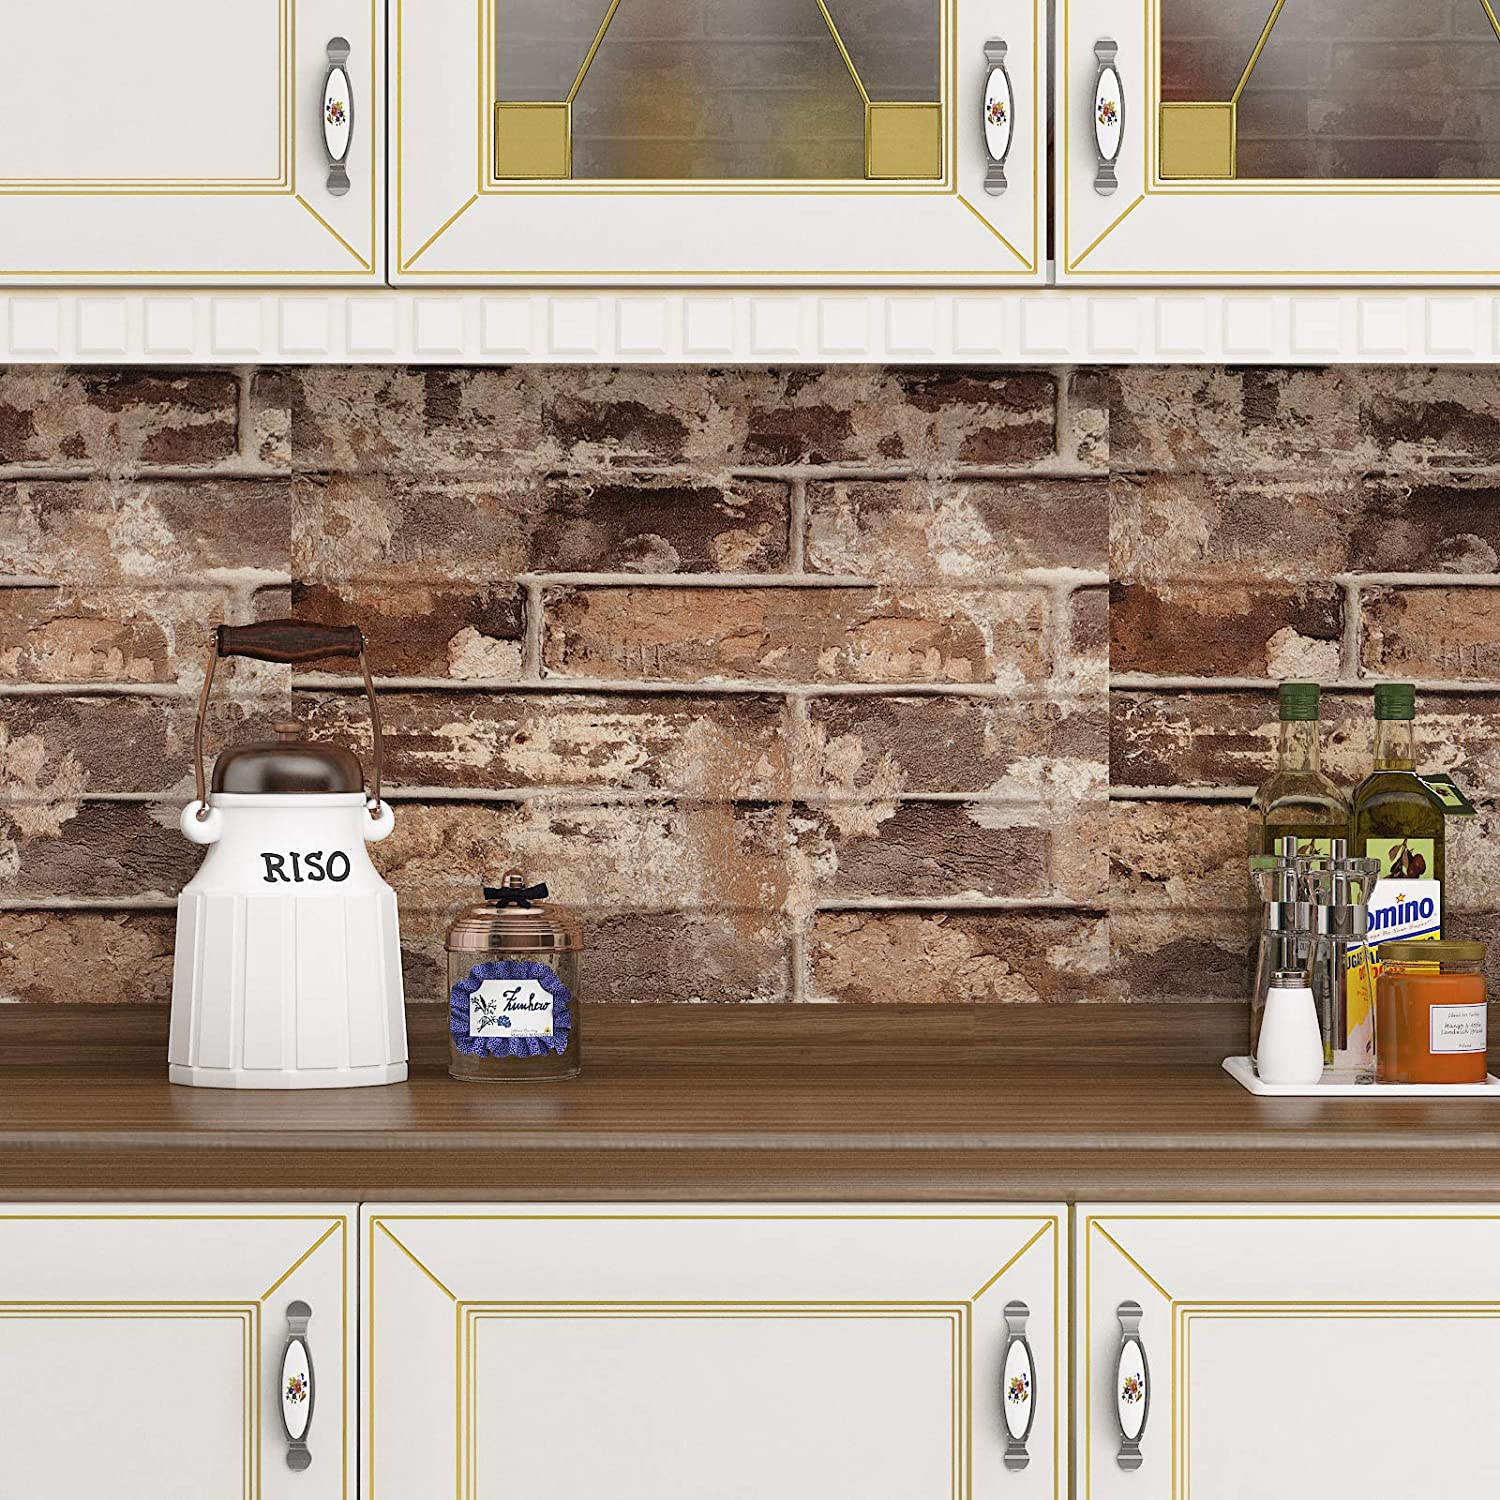 Buy Livelynine Removable 3d Faux Brick Wallpaper Peel And Stick Stone Wall Paper Roll For Living Room Bedroom Accent Wall Kitchen Backsplash Bathroom Wall 15 8x78 8 In Online In Indonesia B08h2jk65z